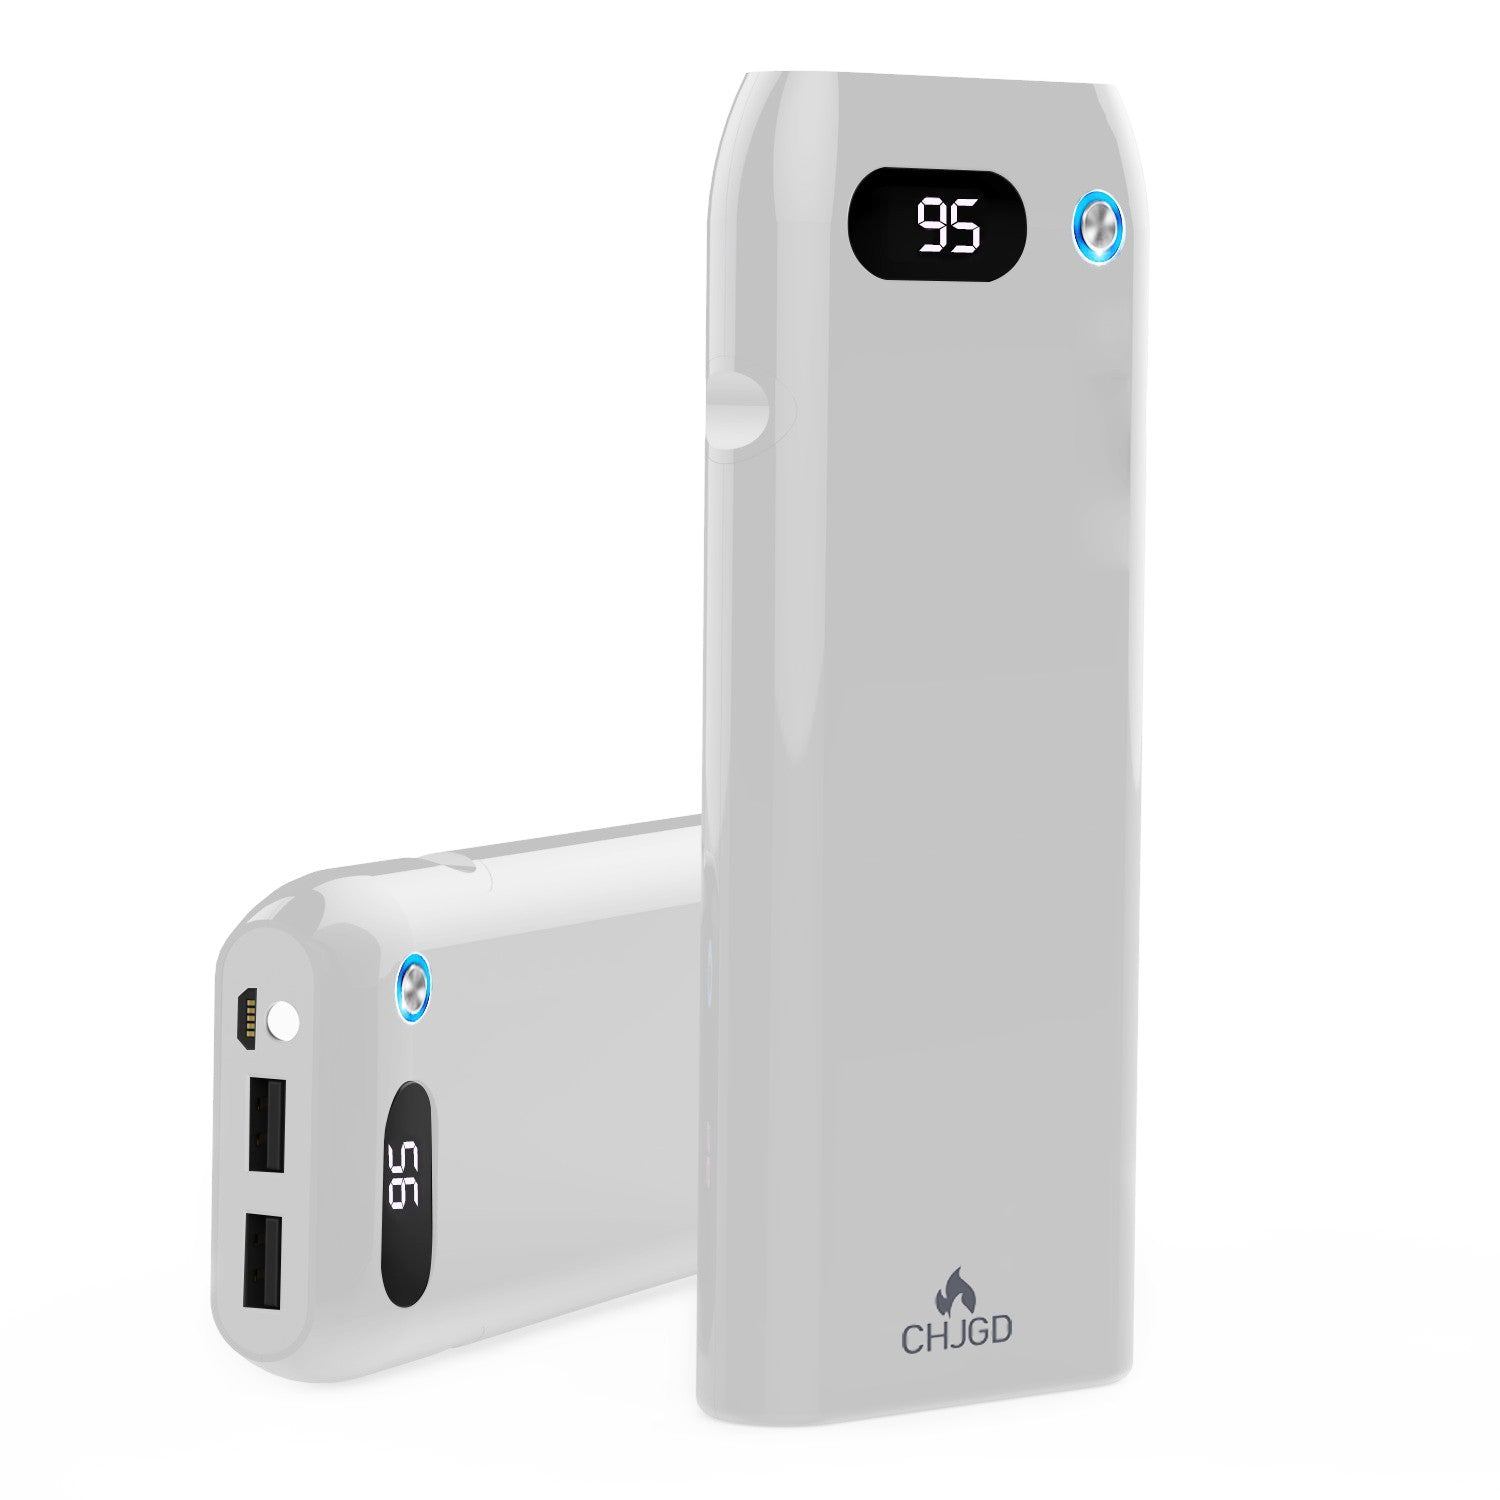 CHJGD® Magnum Opus- Qualcomm Quick Charge 3.0 enabled 21,000 mAh Power Bank with LCD display (White) - CHARGEDPOWER.COM